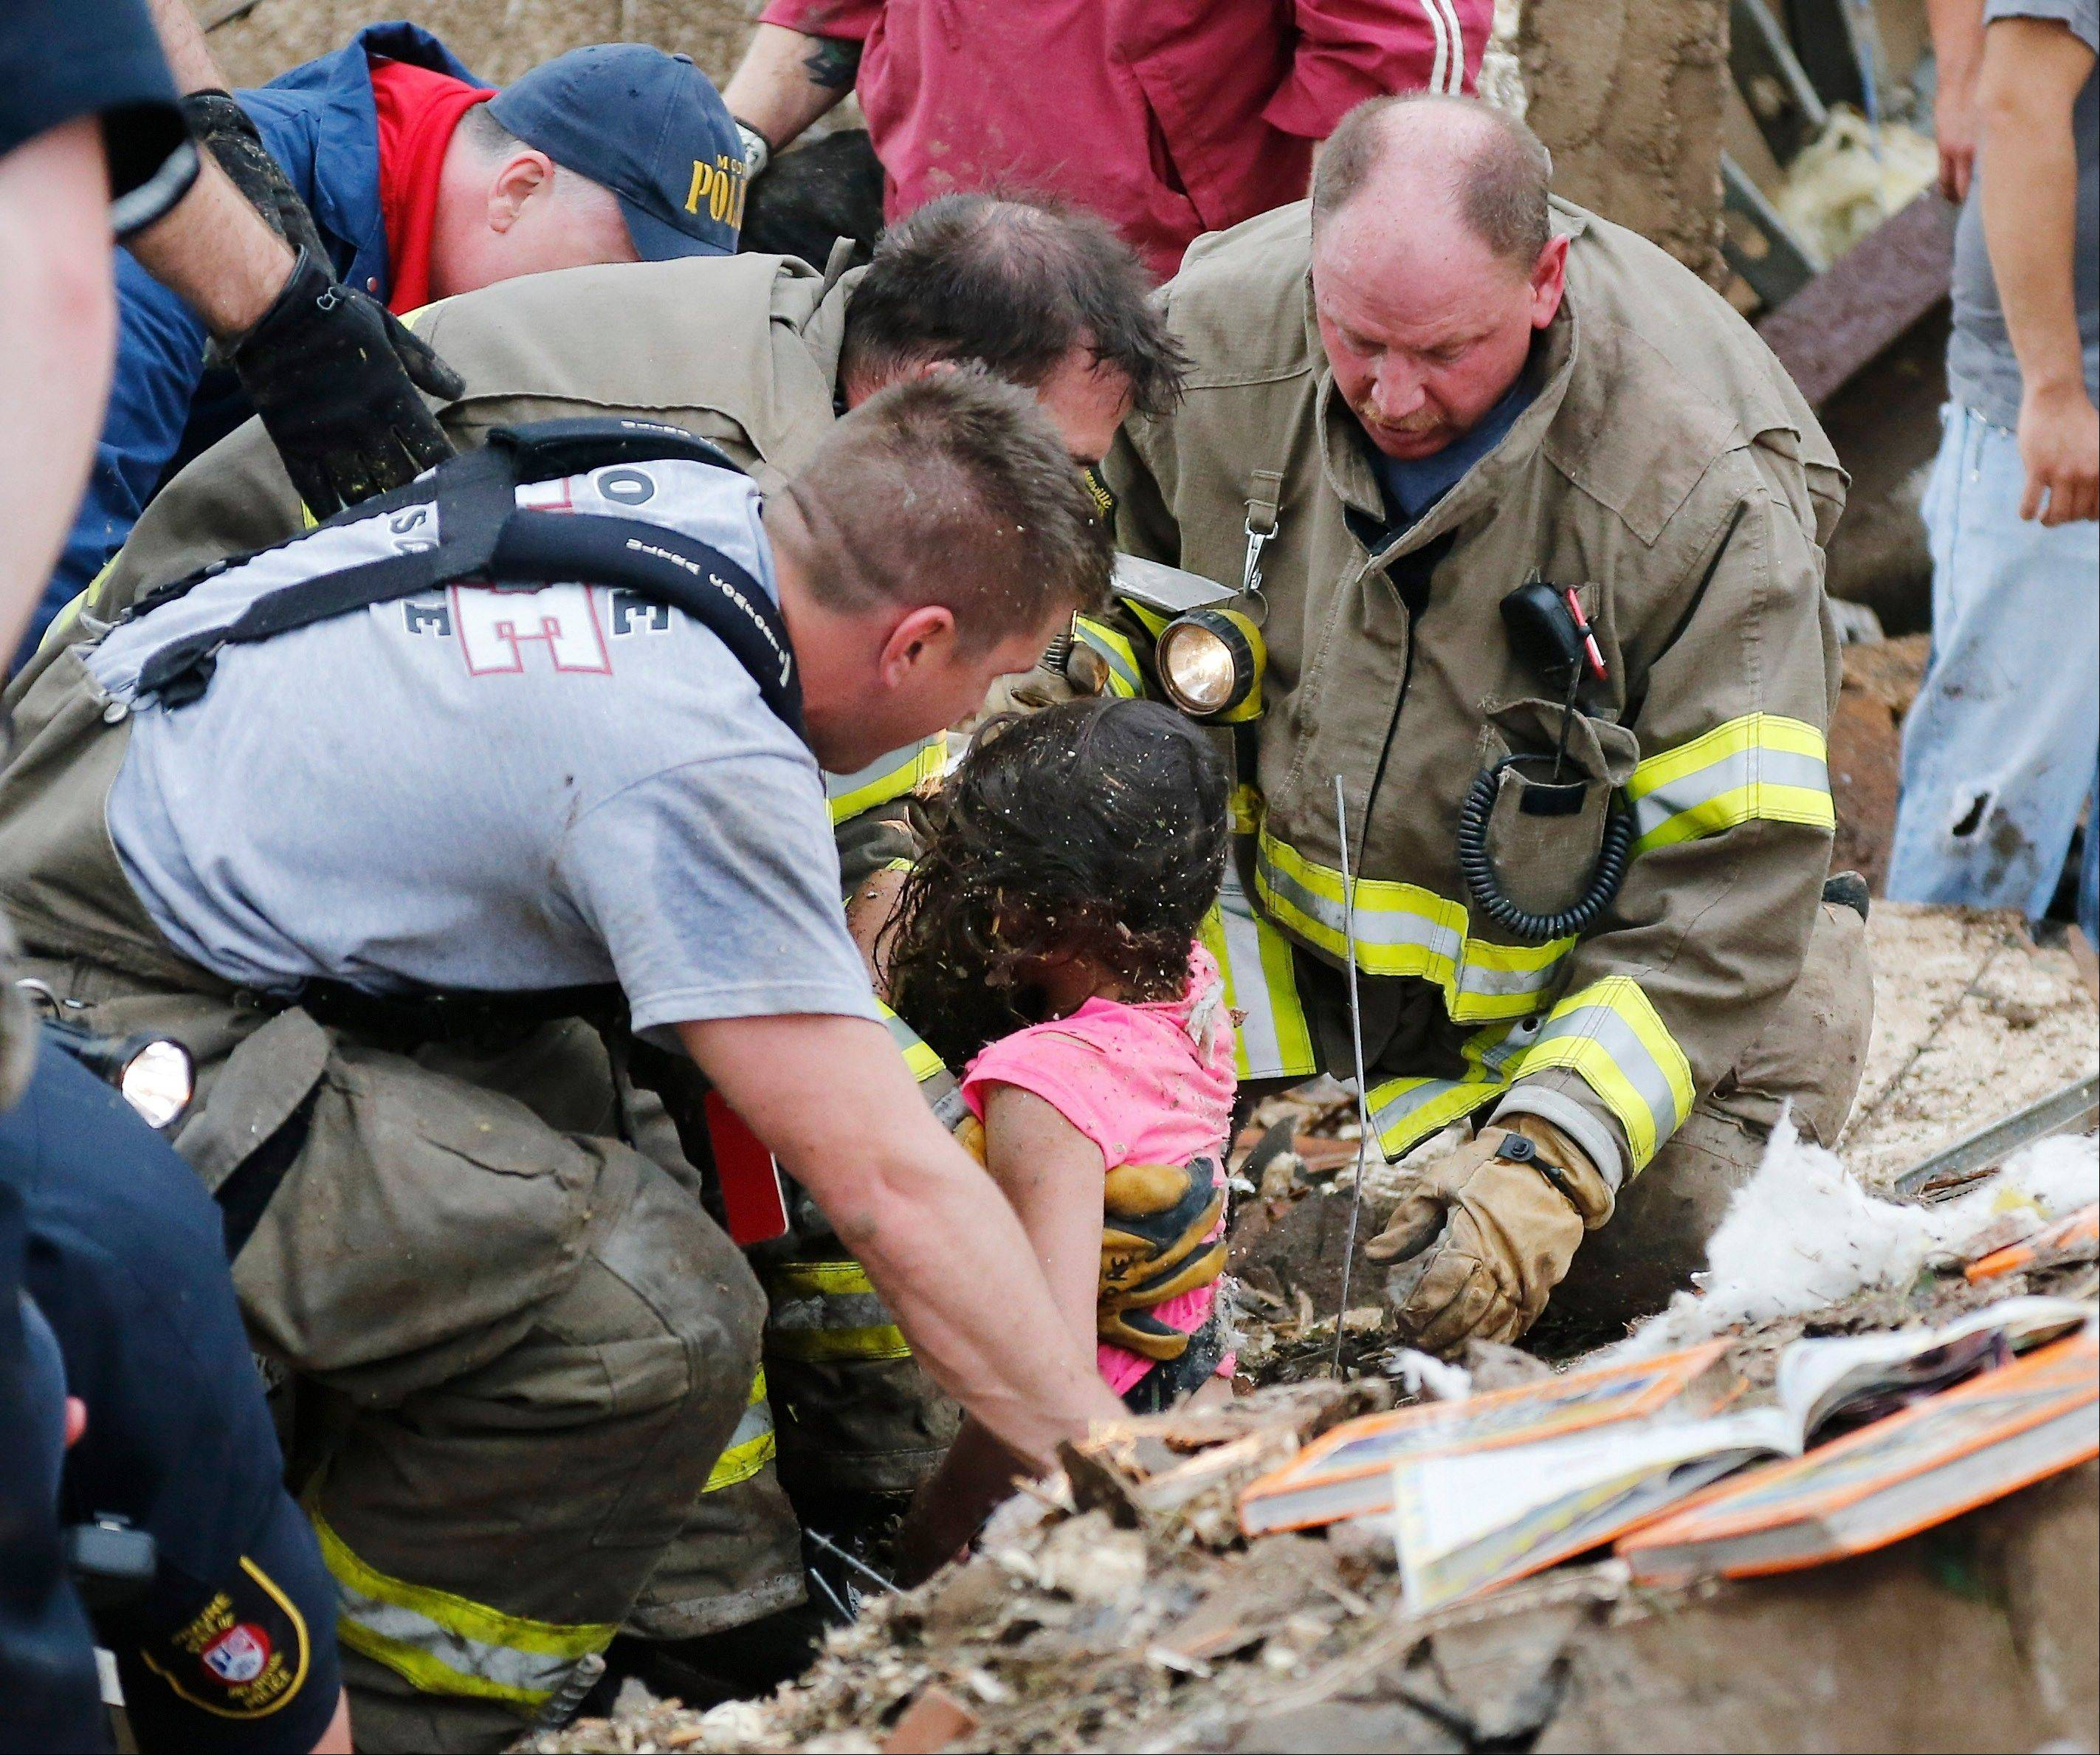 20 children among 51 killed in Oklahoma tornado